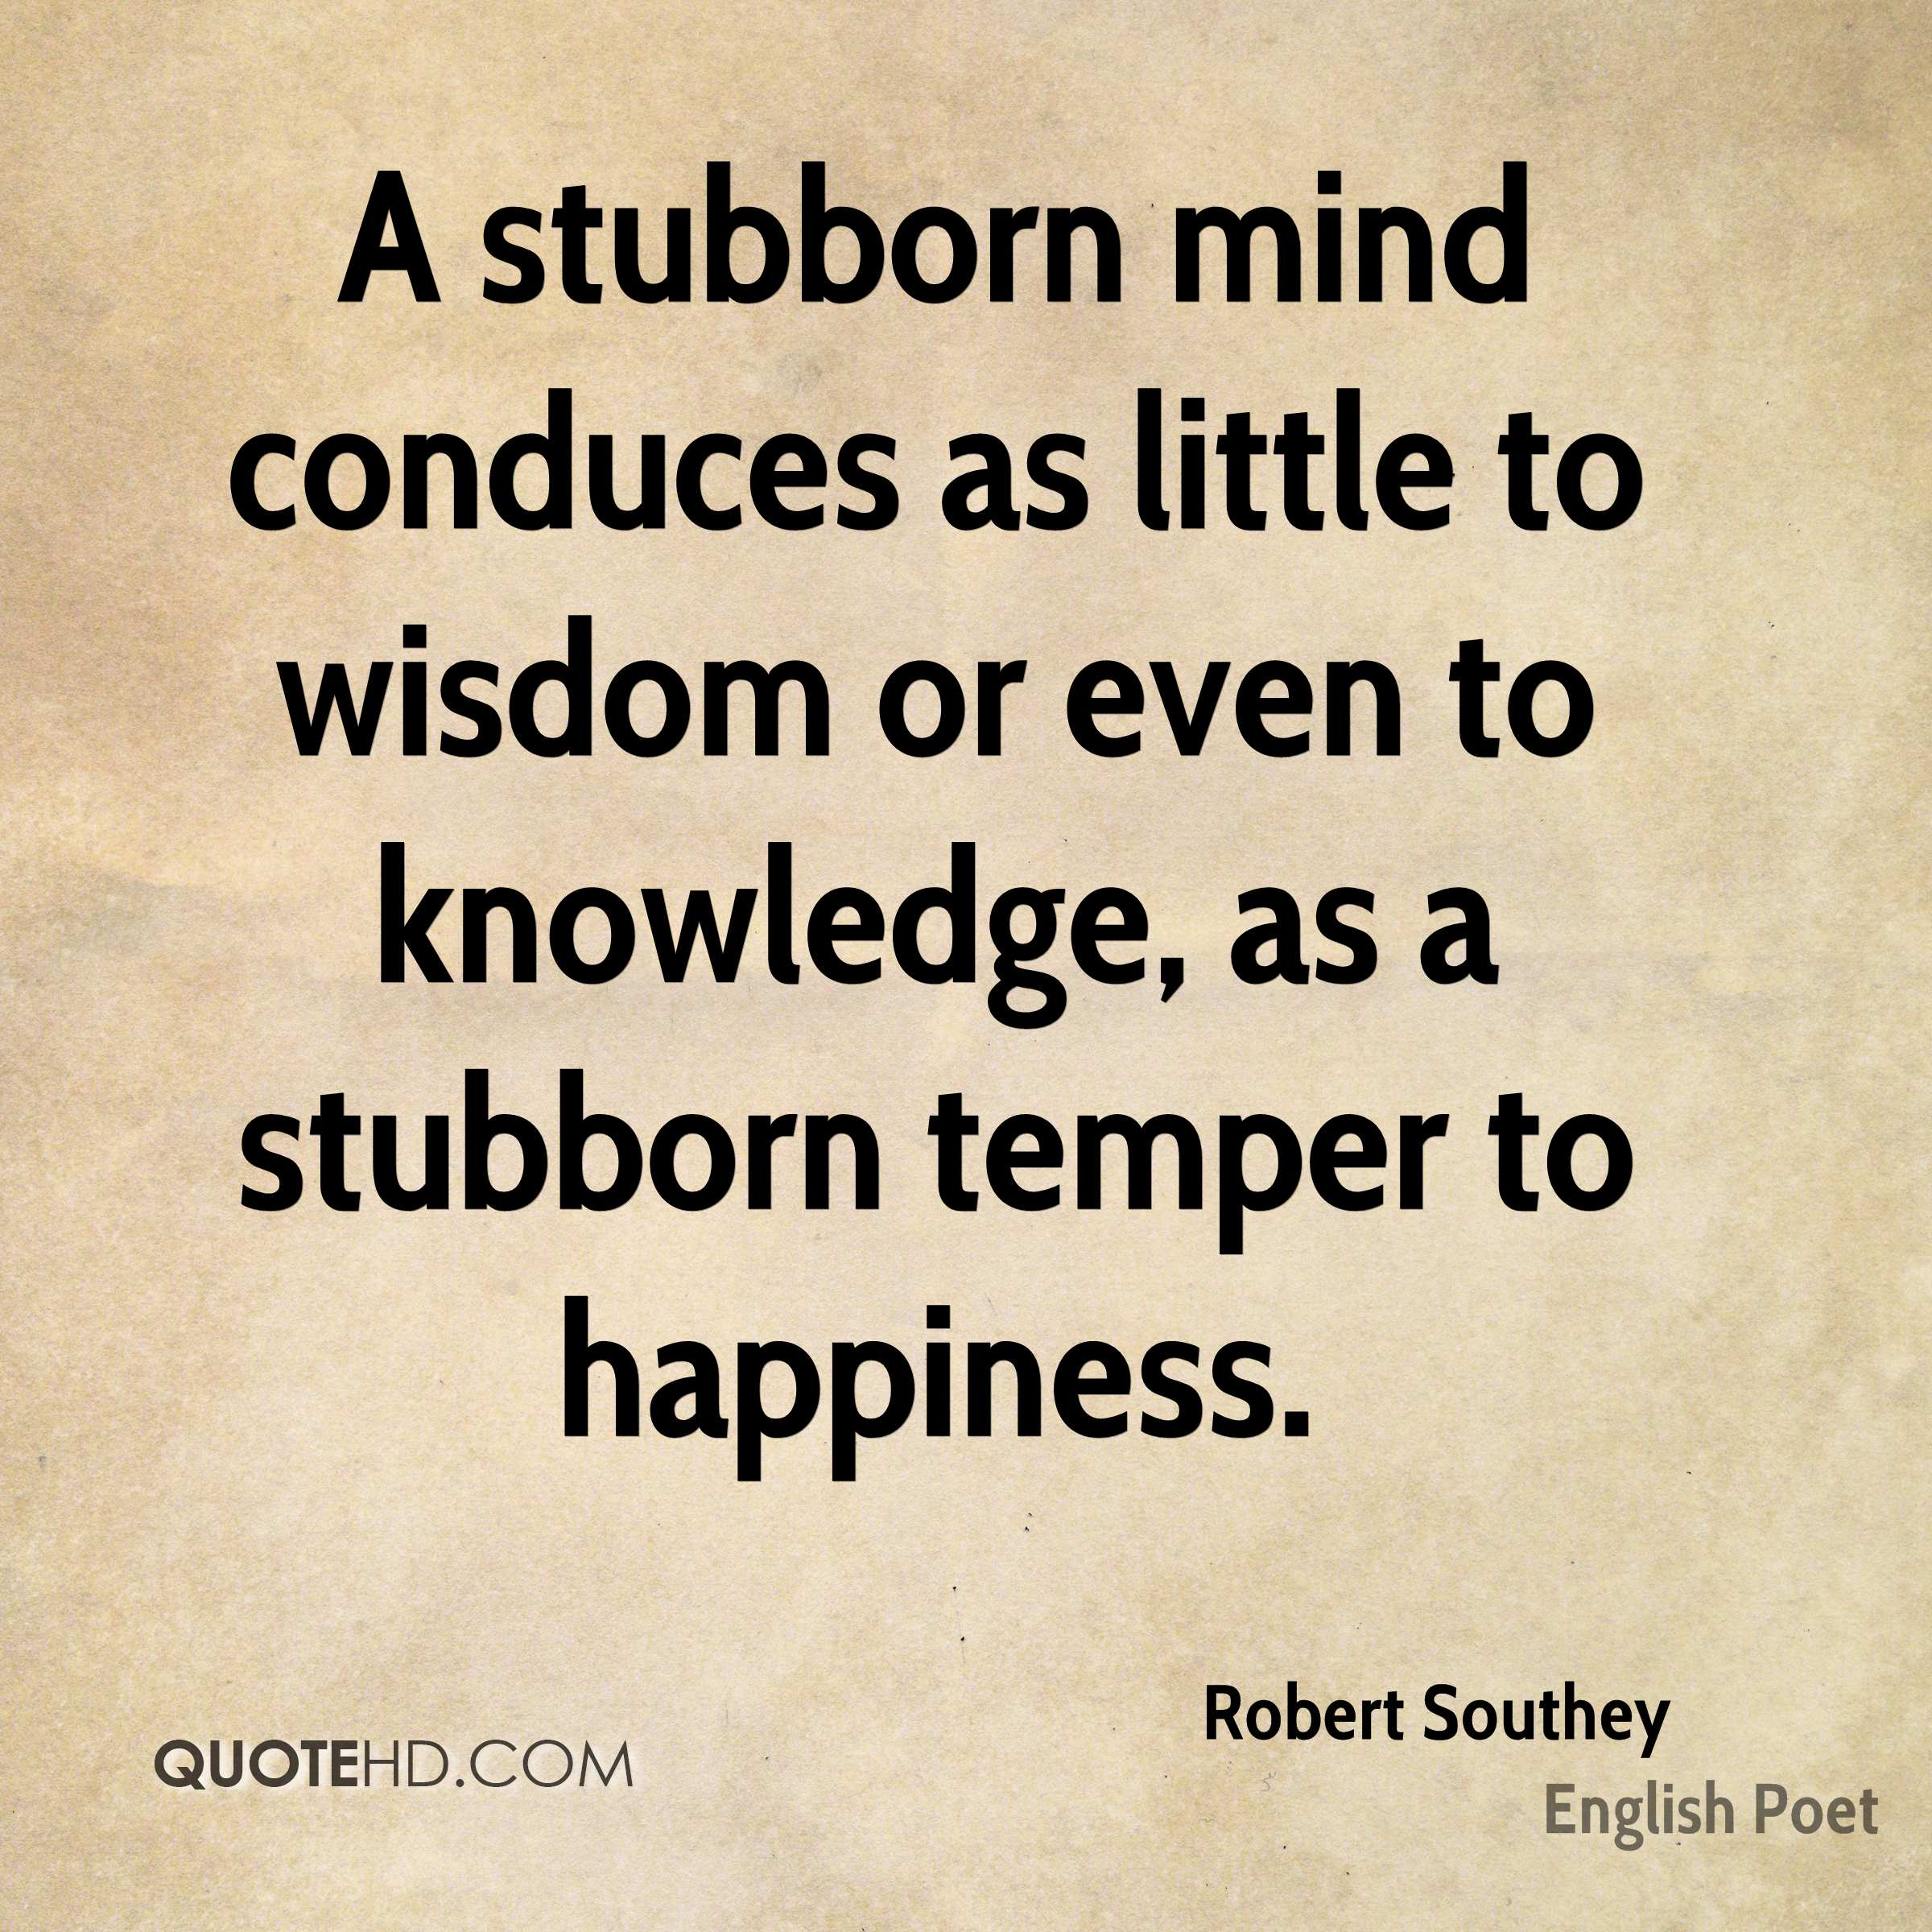 Funny Quotes About Being Stubborn: Robert Southey Quotes